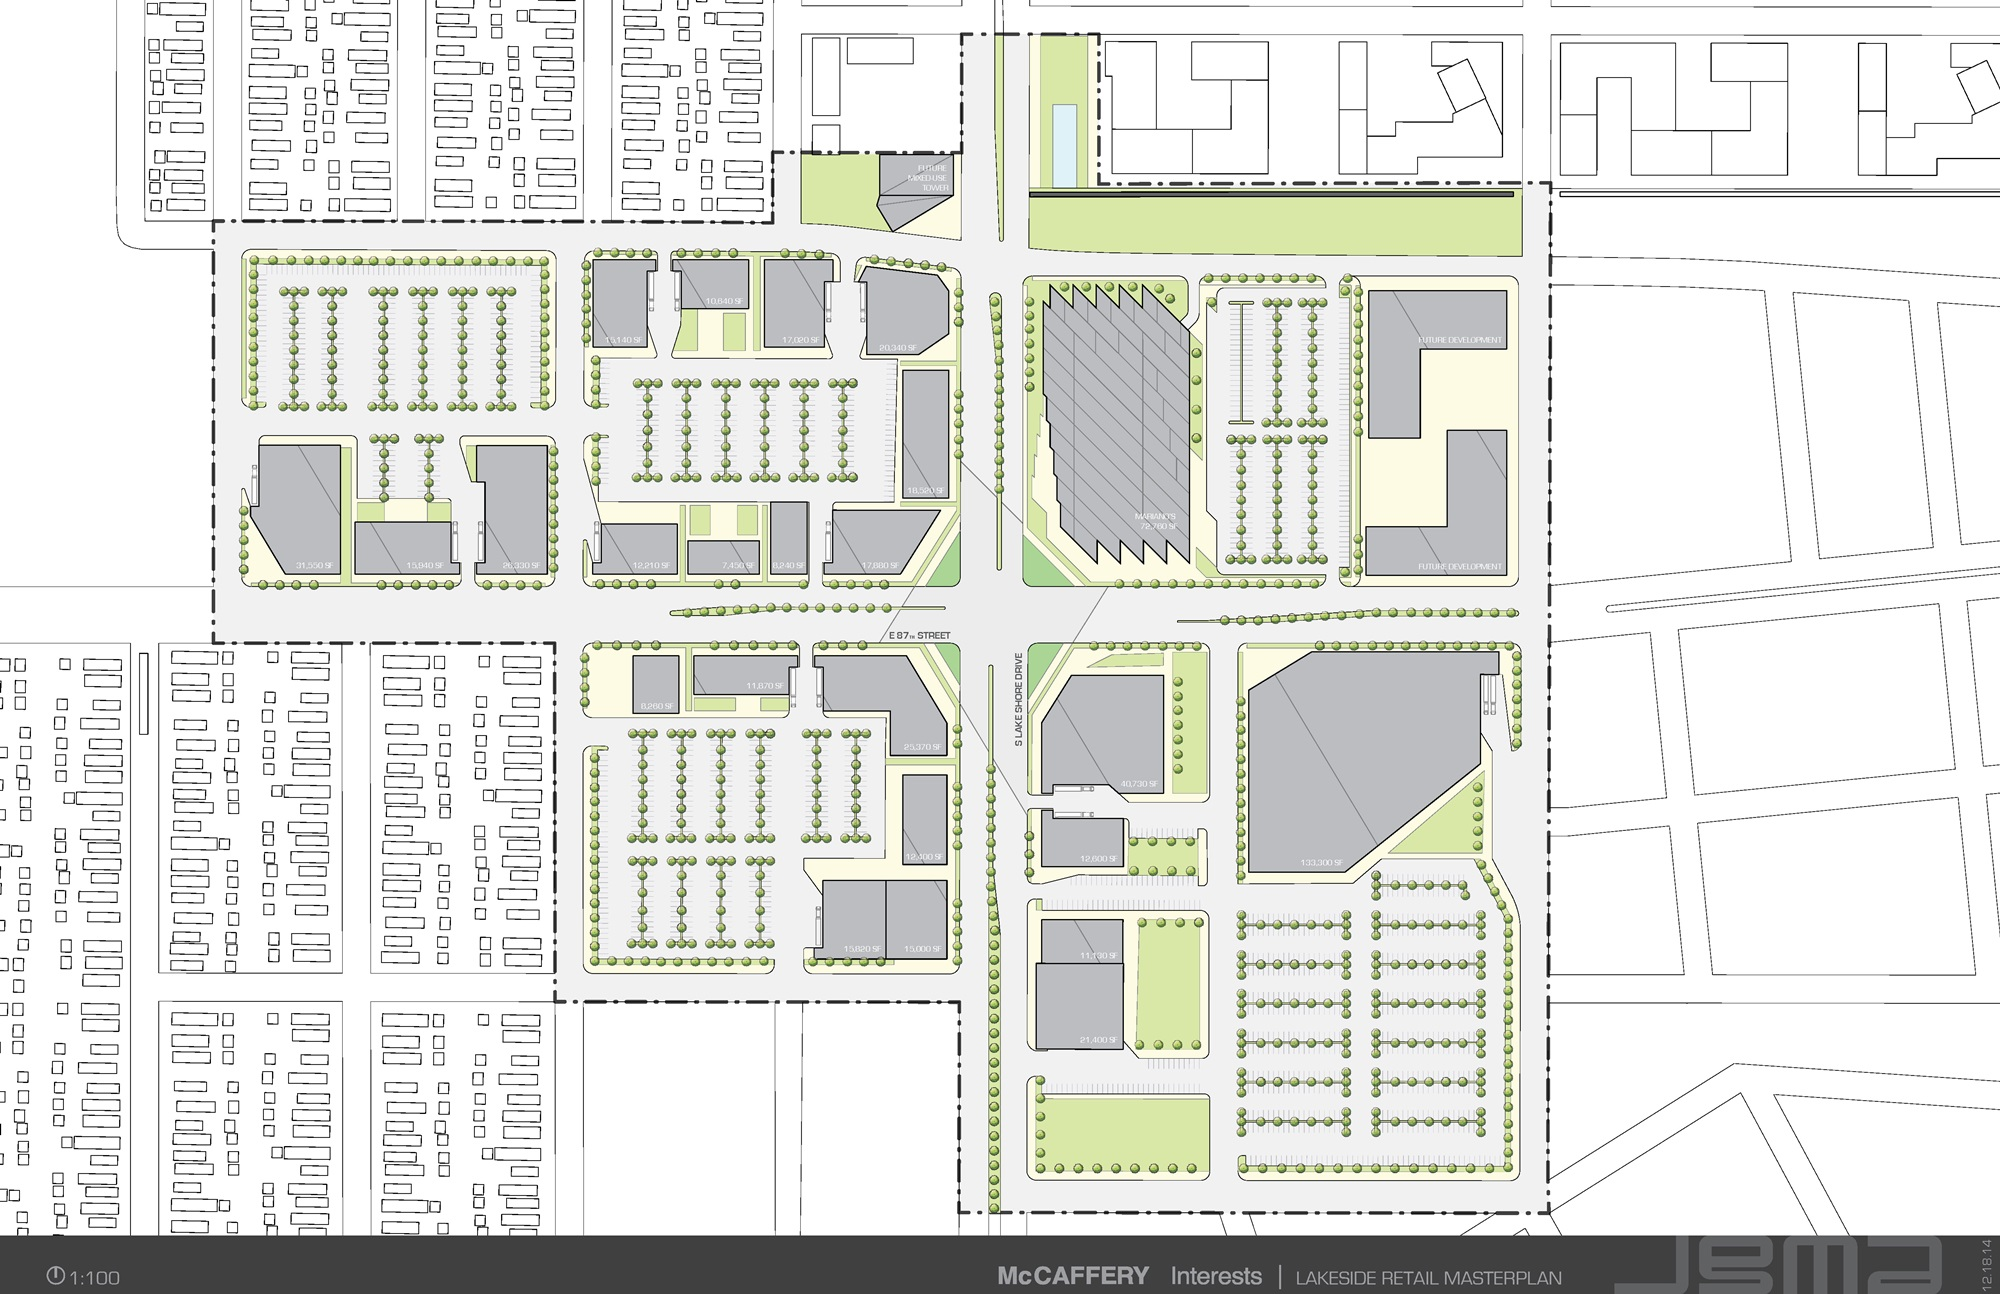 14168_LWM_Retail Masterplan Site Plan_1